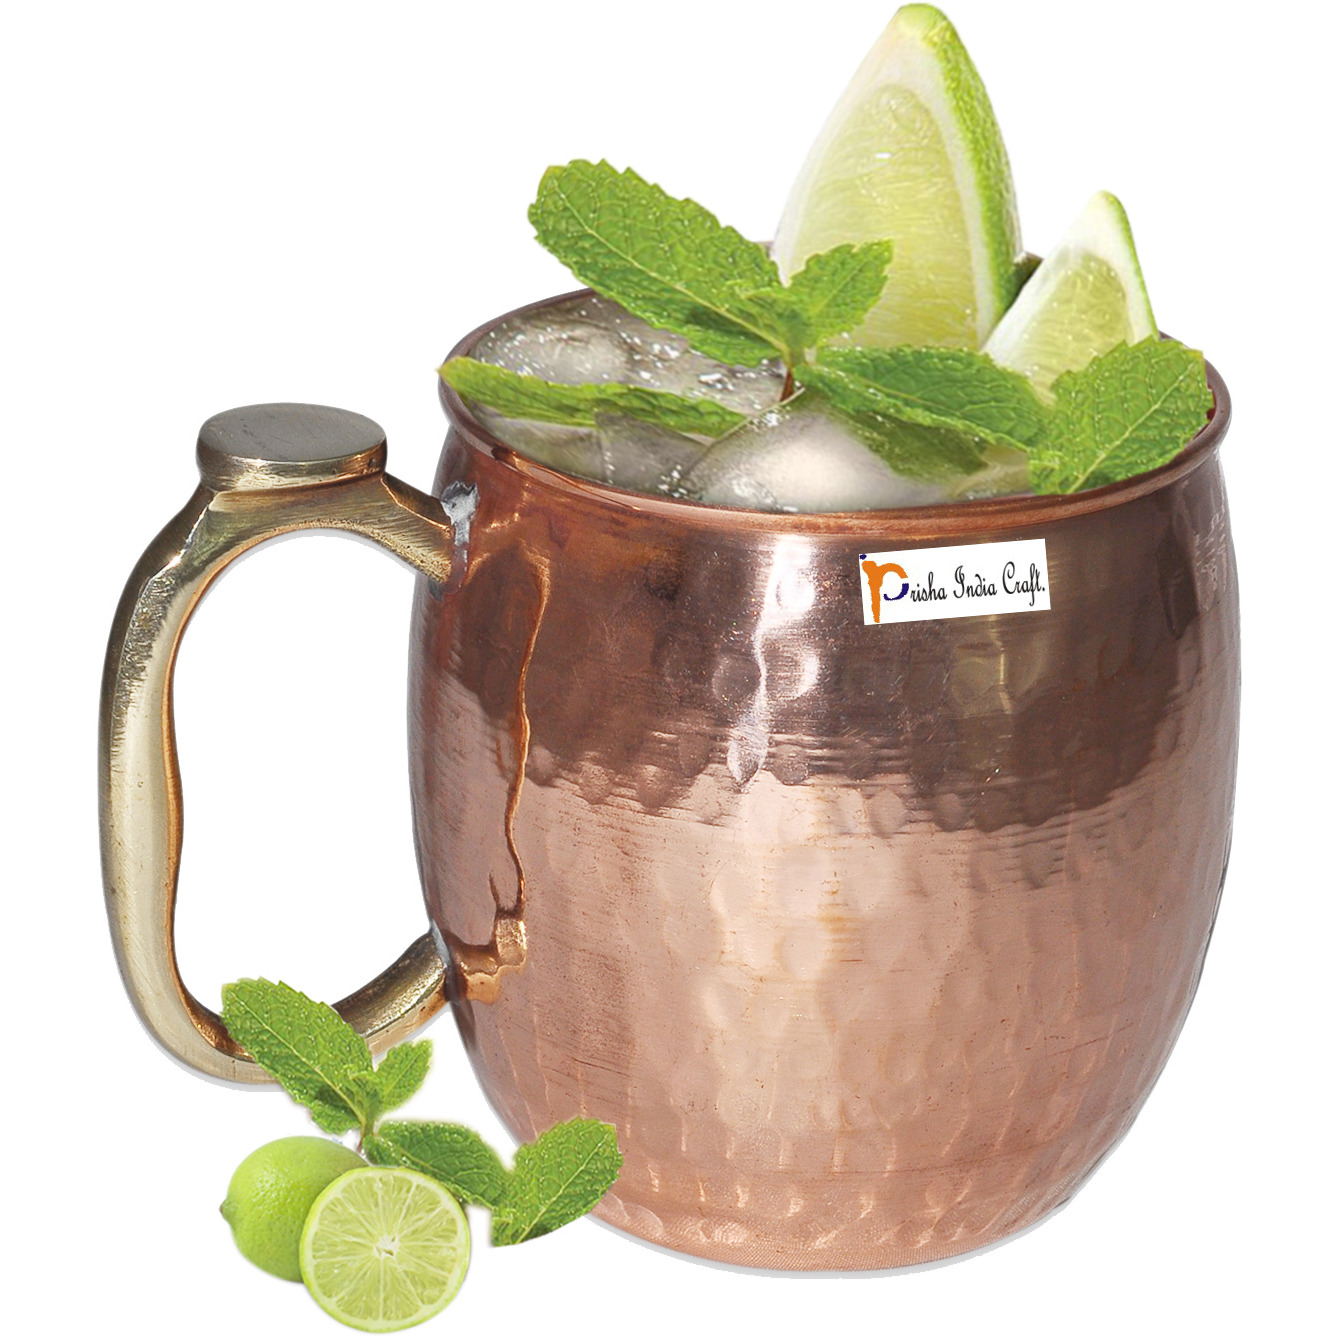 Set of 8 - Prisha India Craft B. Copper Mug for Moscow Mules 550 ML / 18 oz Pure Copper Mug Mule Cup, Moscow Mule Cocktail Cup, Copper Mugs, Cocktail Mugs